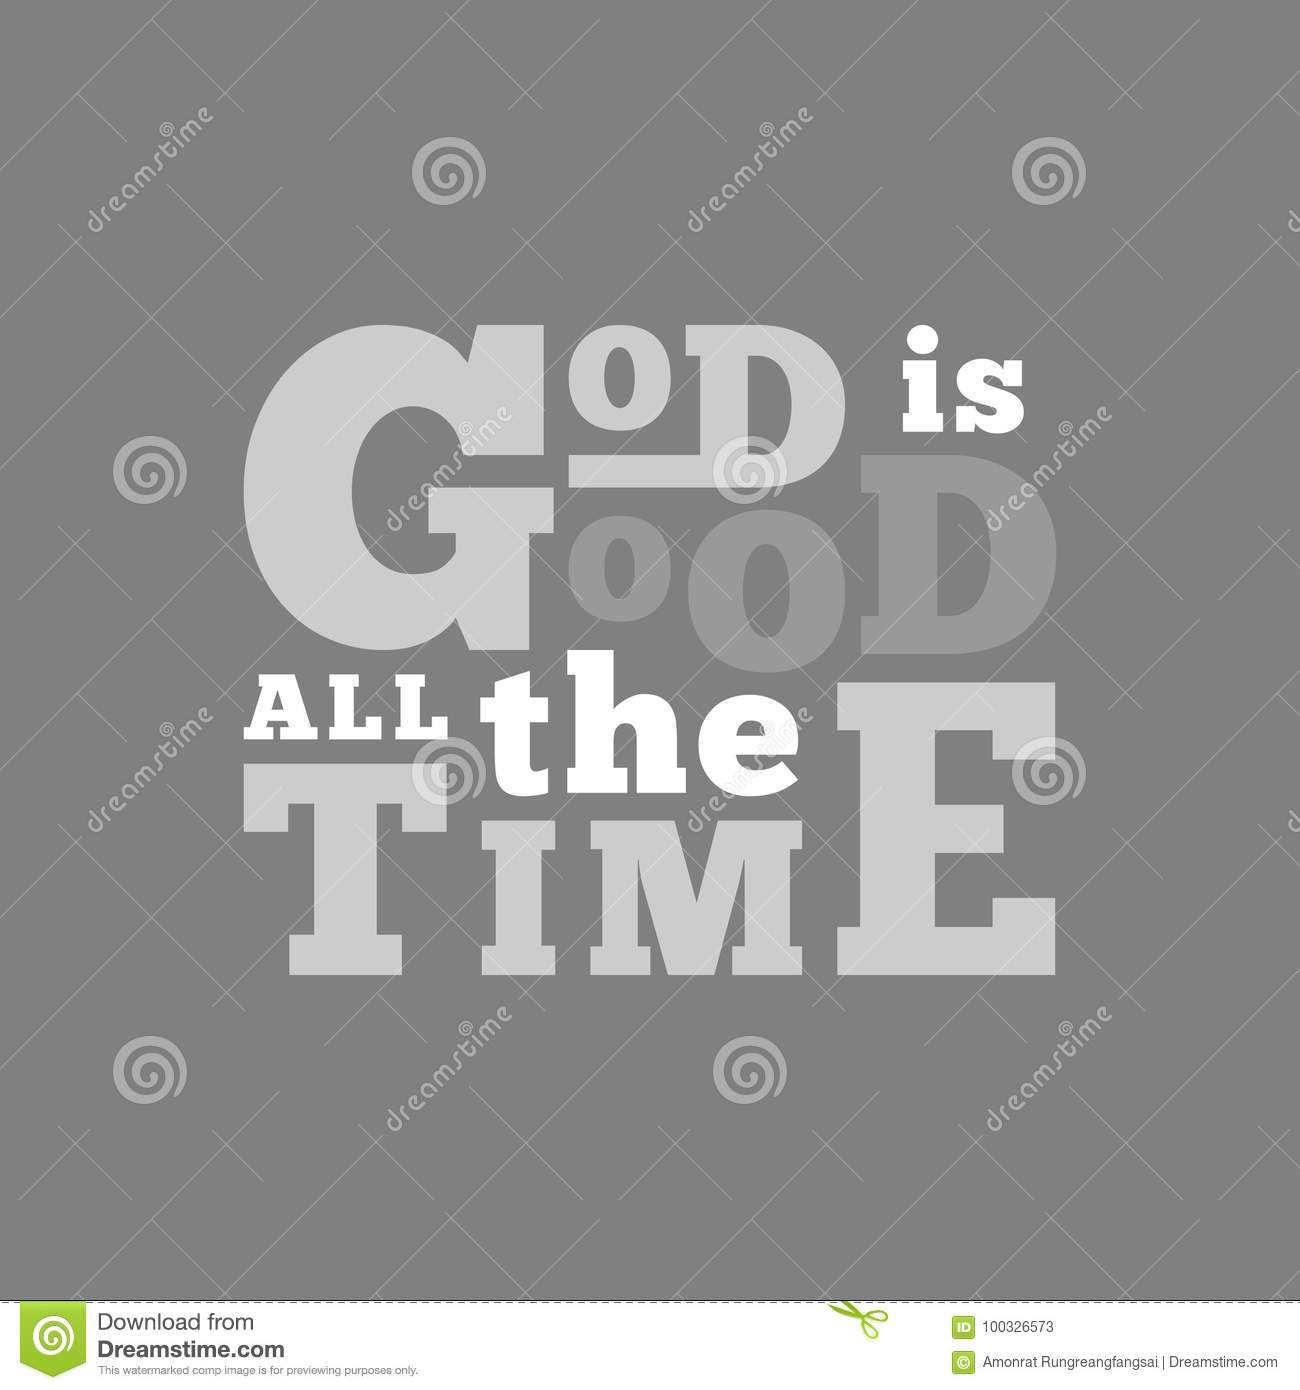 God Is Good All The Time Typography For Poster Stock Vector